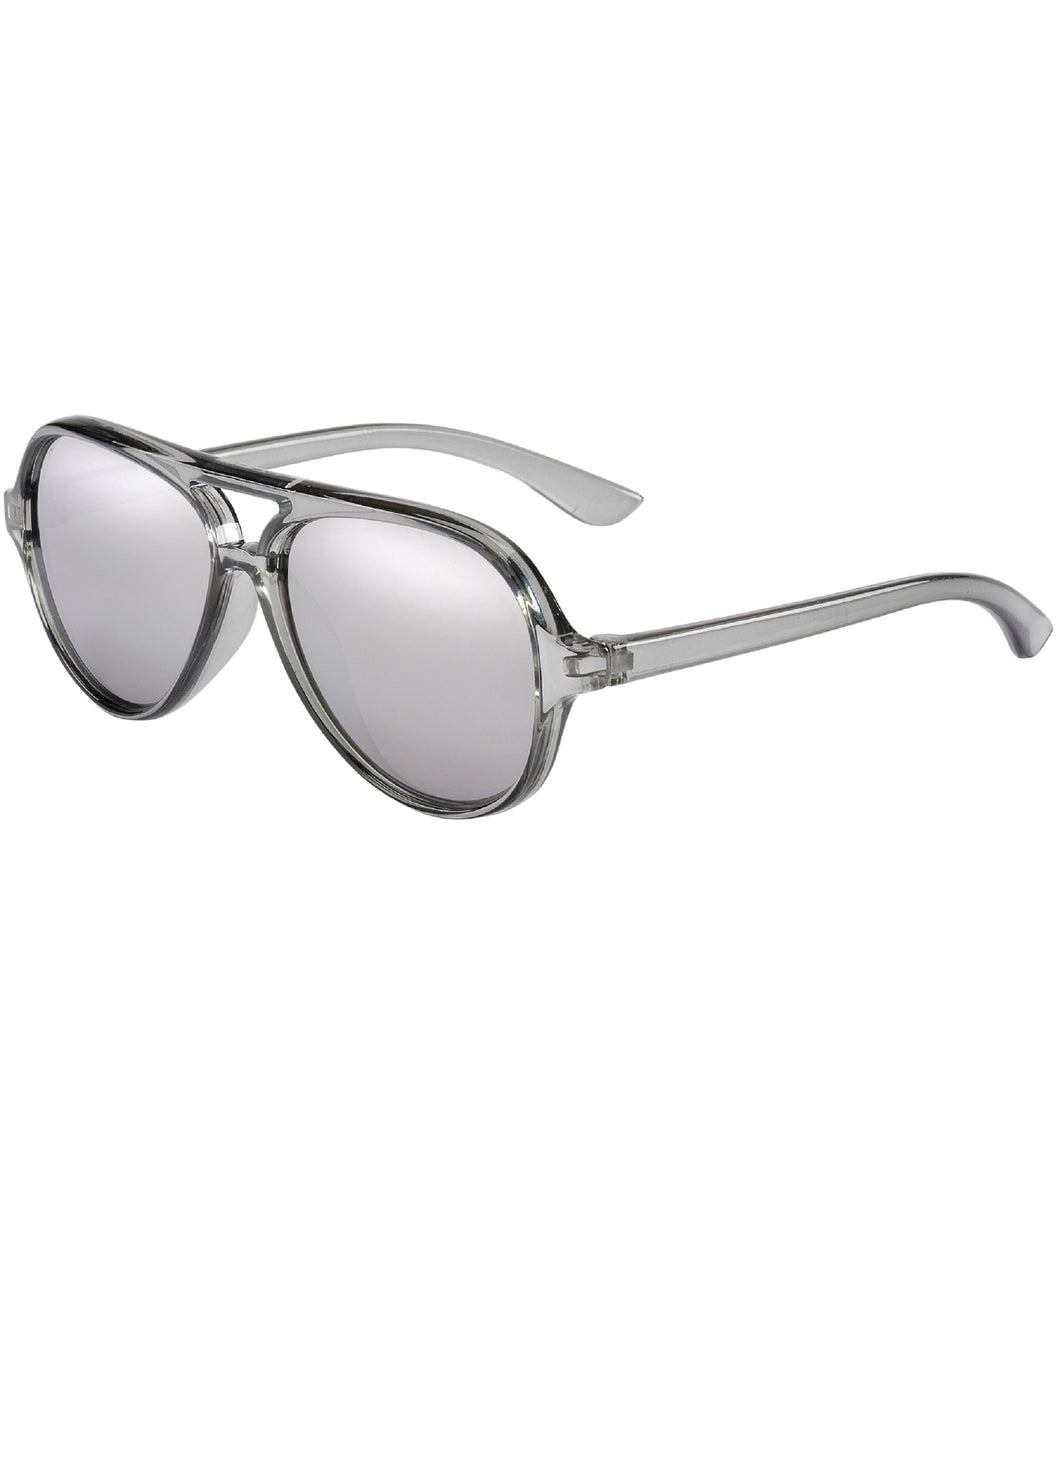 Stanley Crystal Grey Aviator